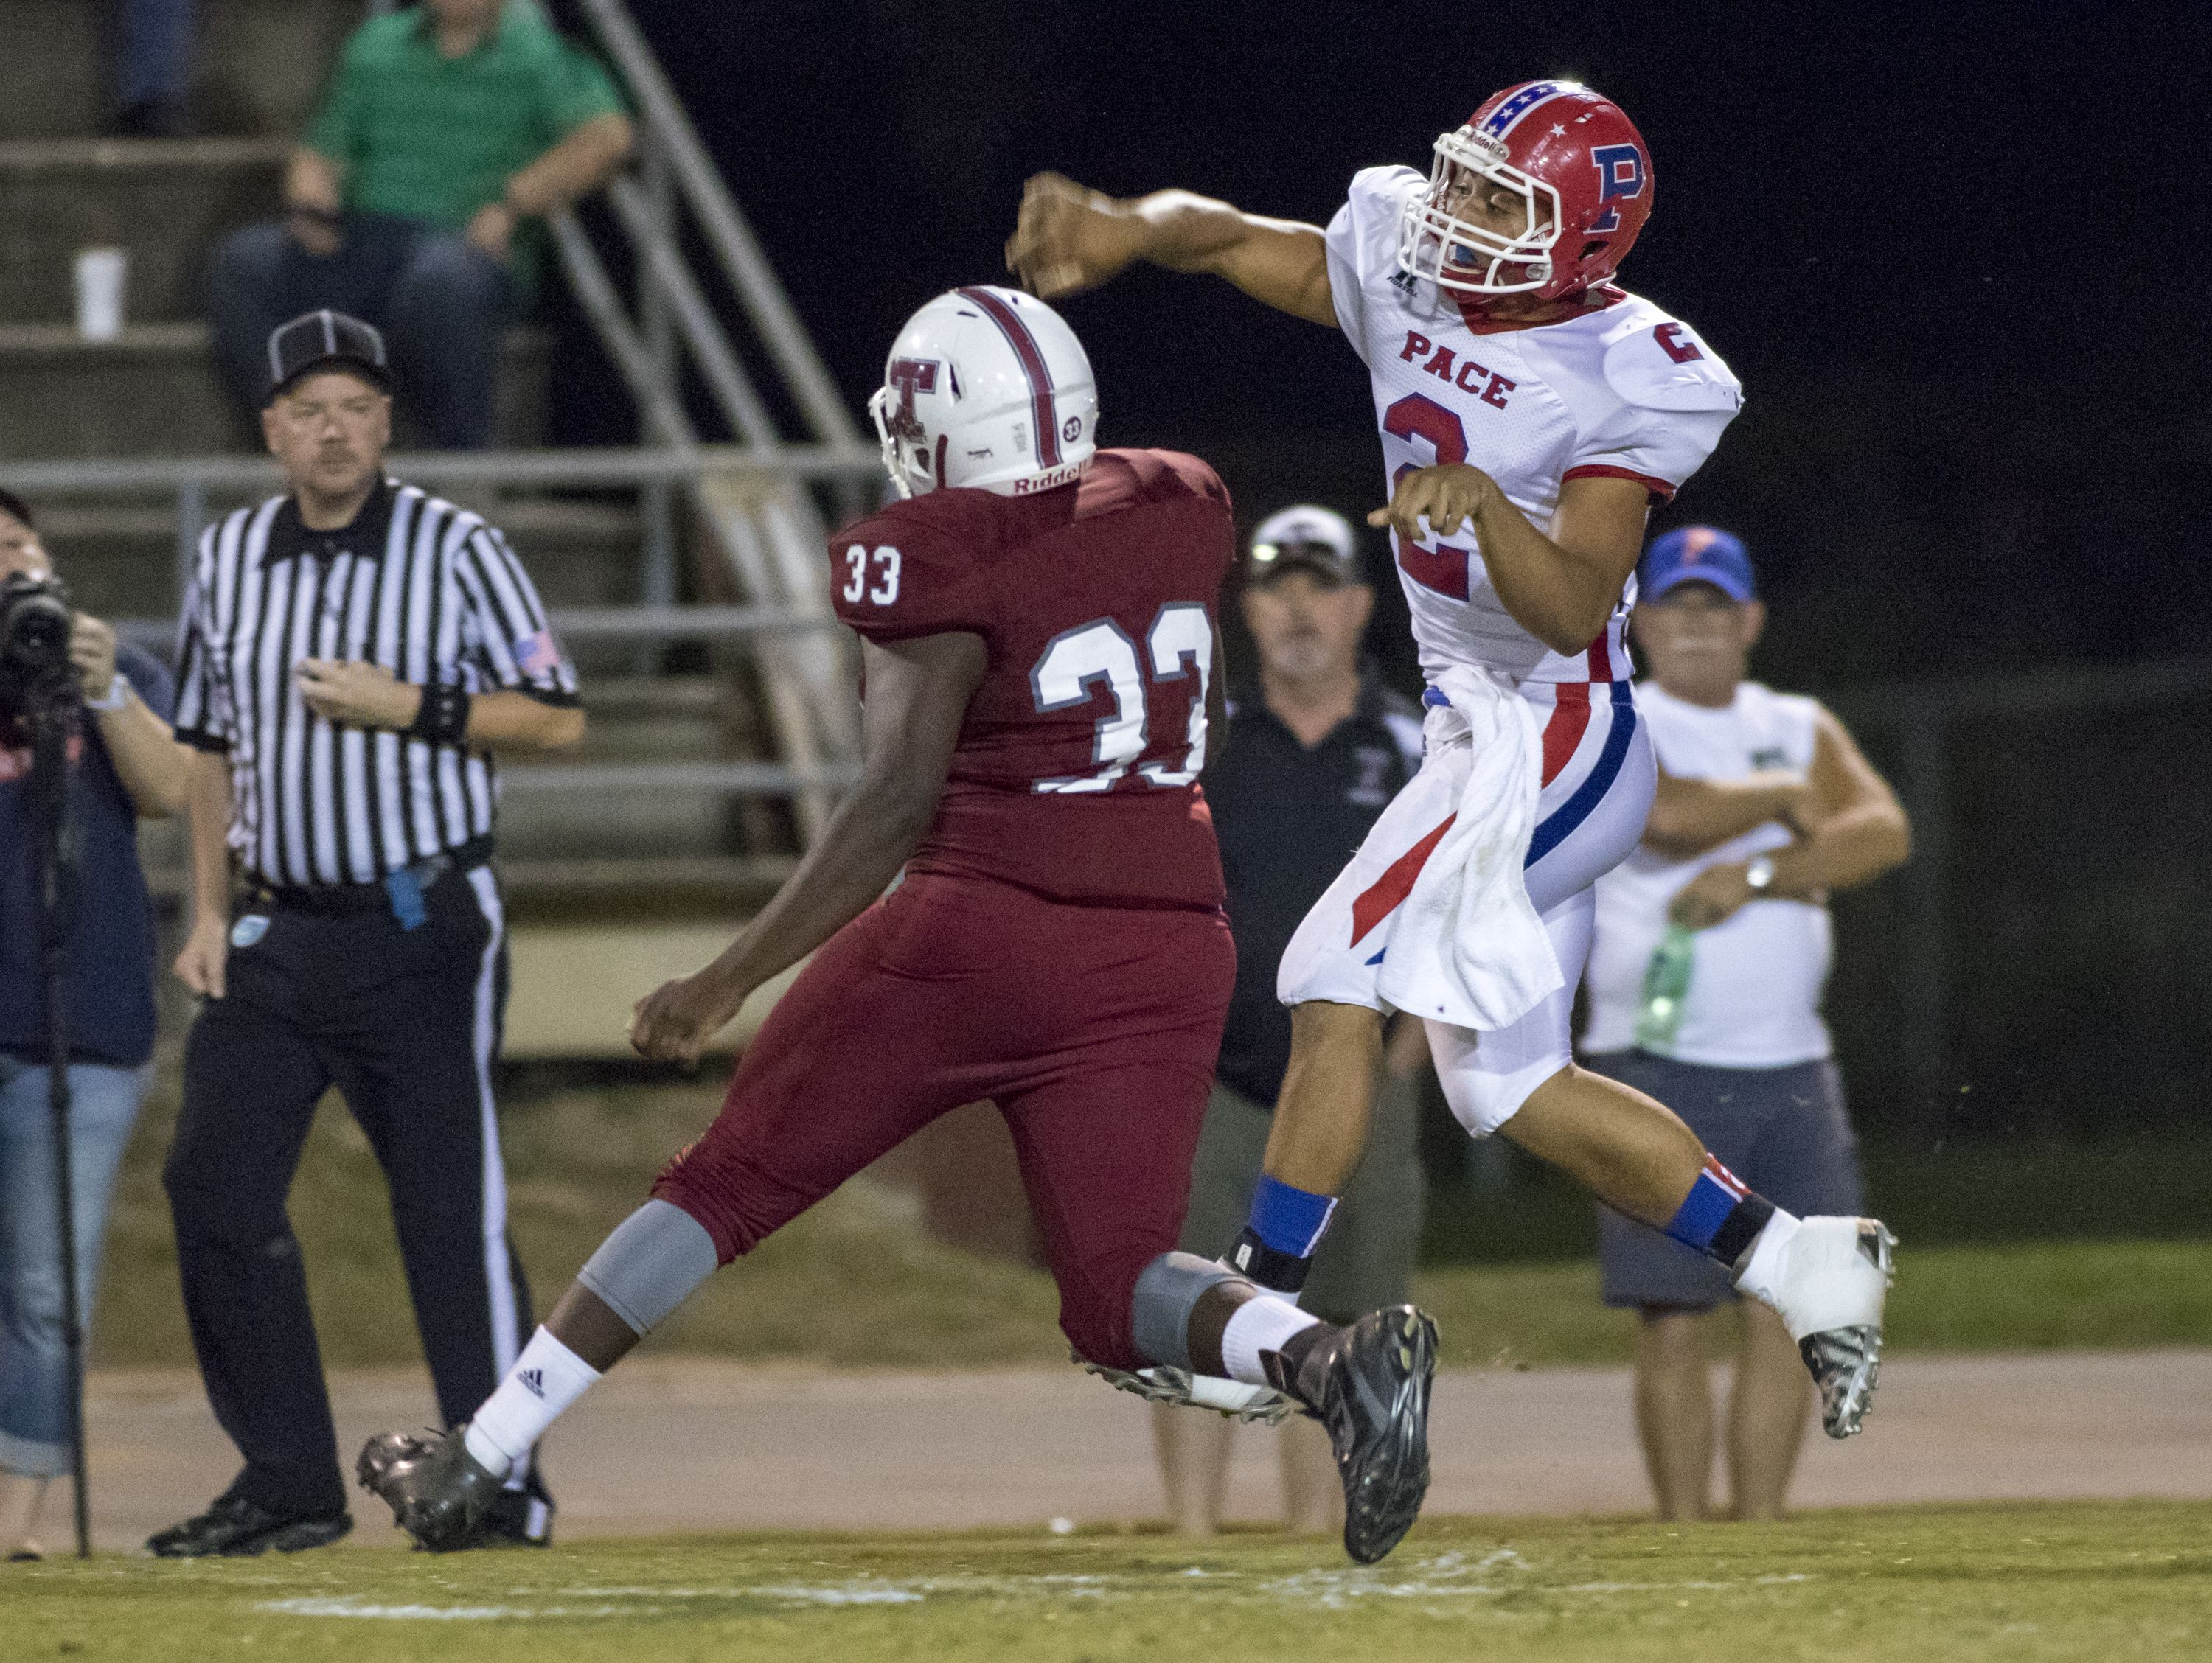 Quarterback Damean Bivins (2) leaps as he gets rid of the ball before Caleb Campell (33) reaches him during the Pace vs Tate football game at Tate High School on Friday, October 7, 2016.